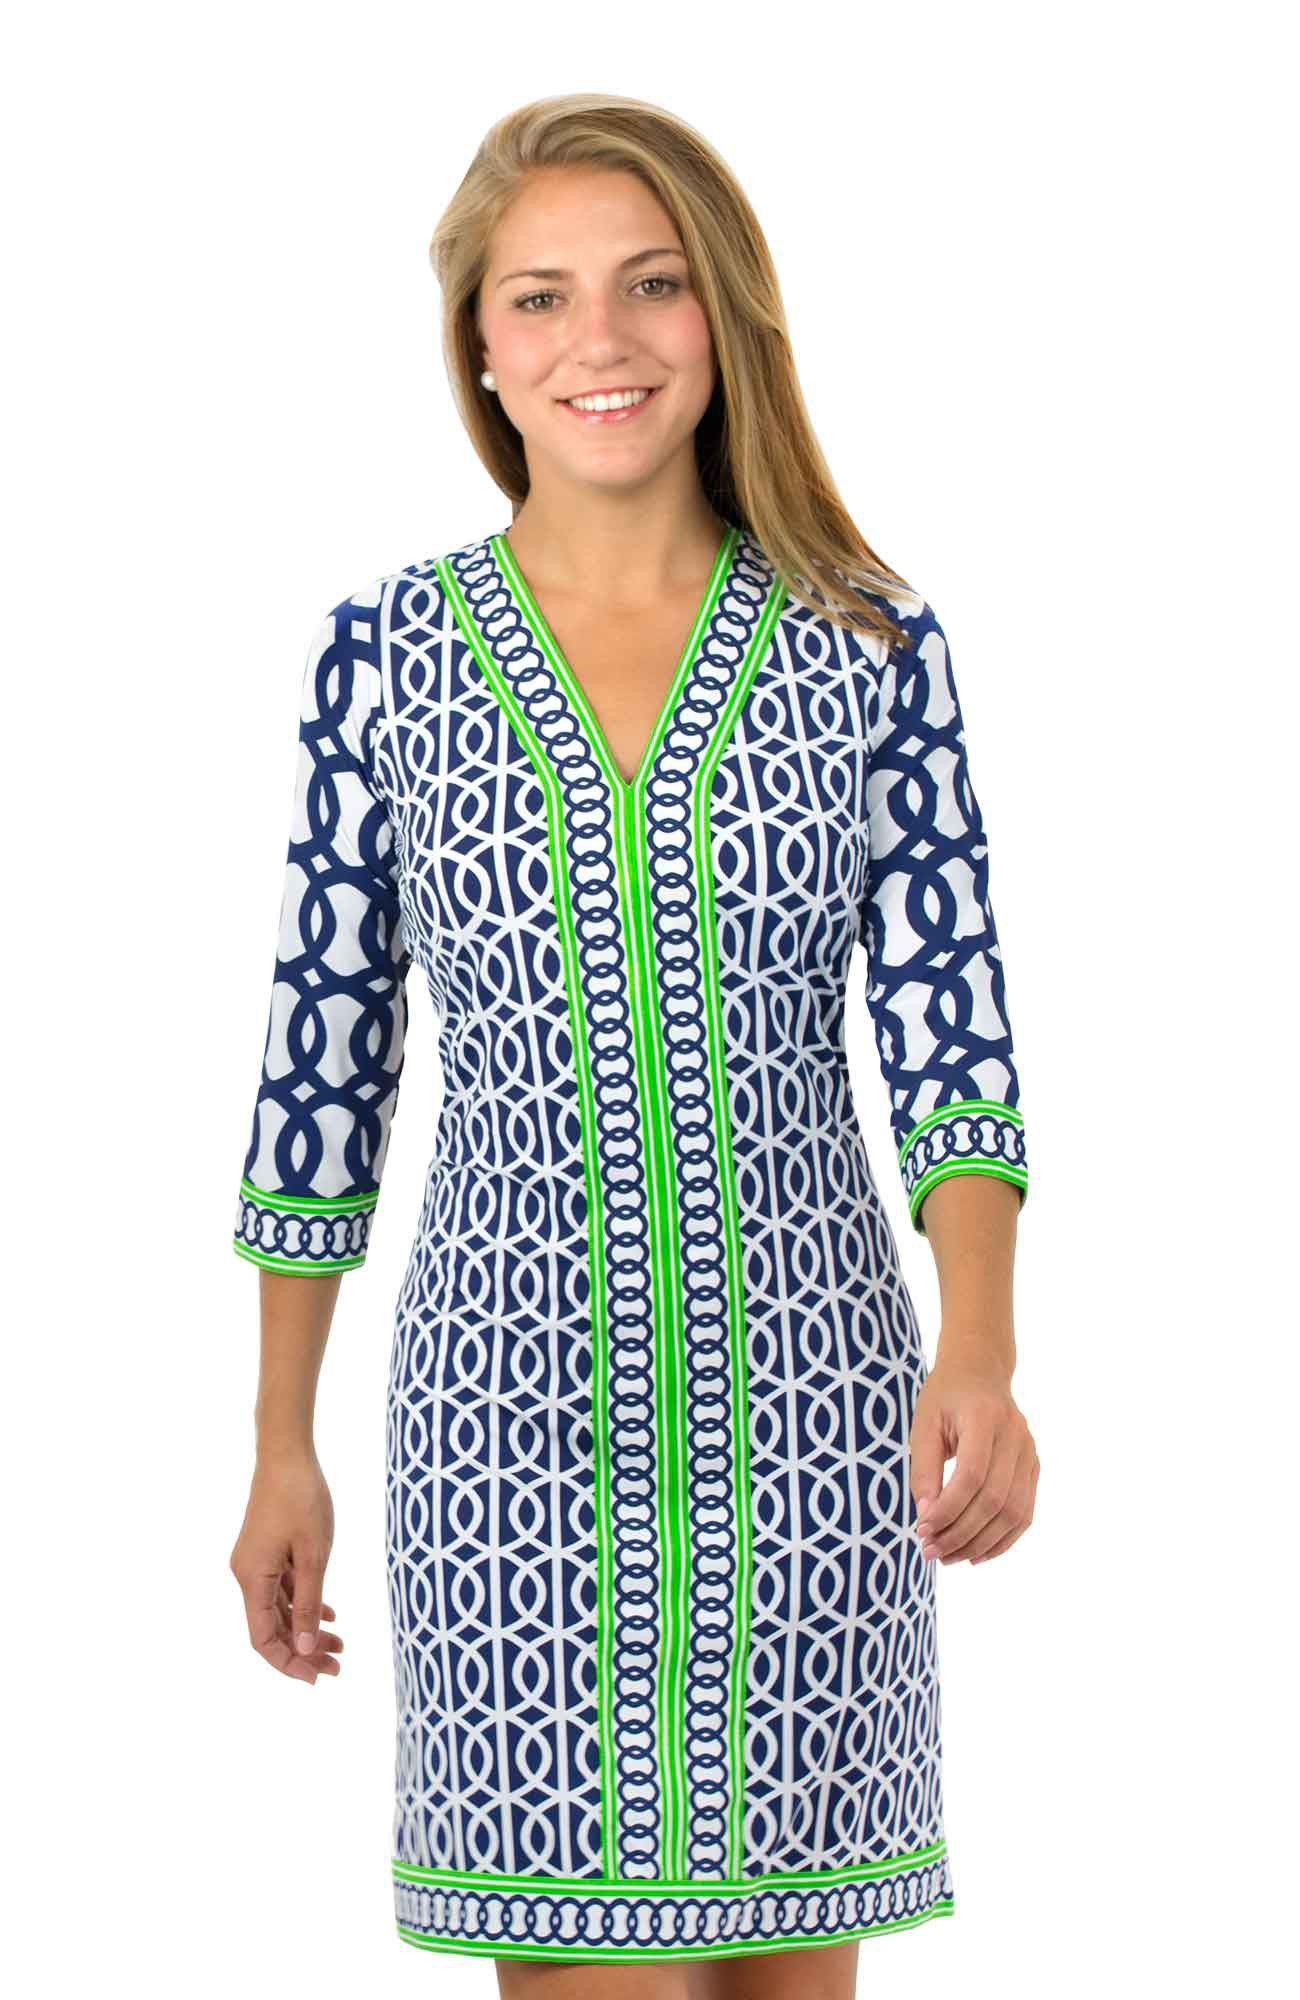 35c7ad669a Another great Gretchen Scott dress